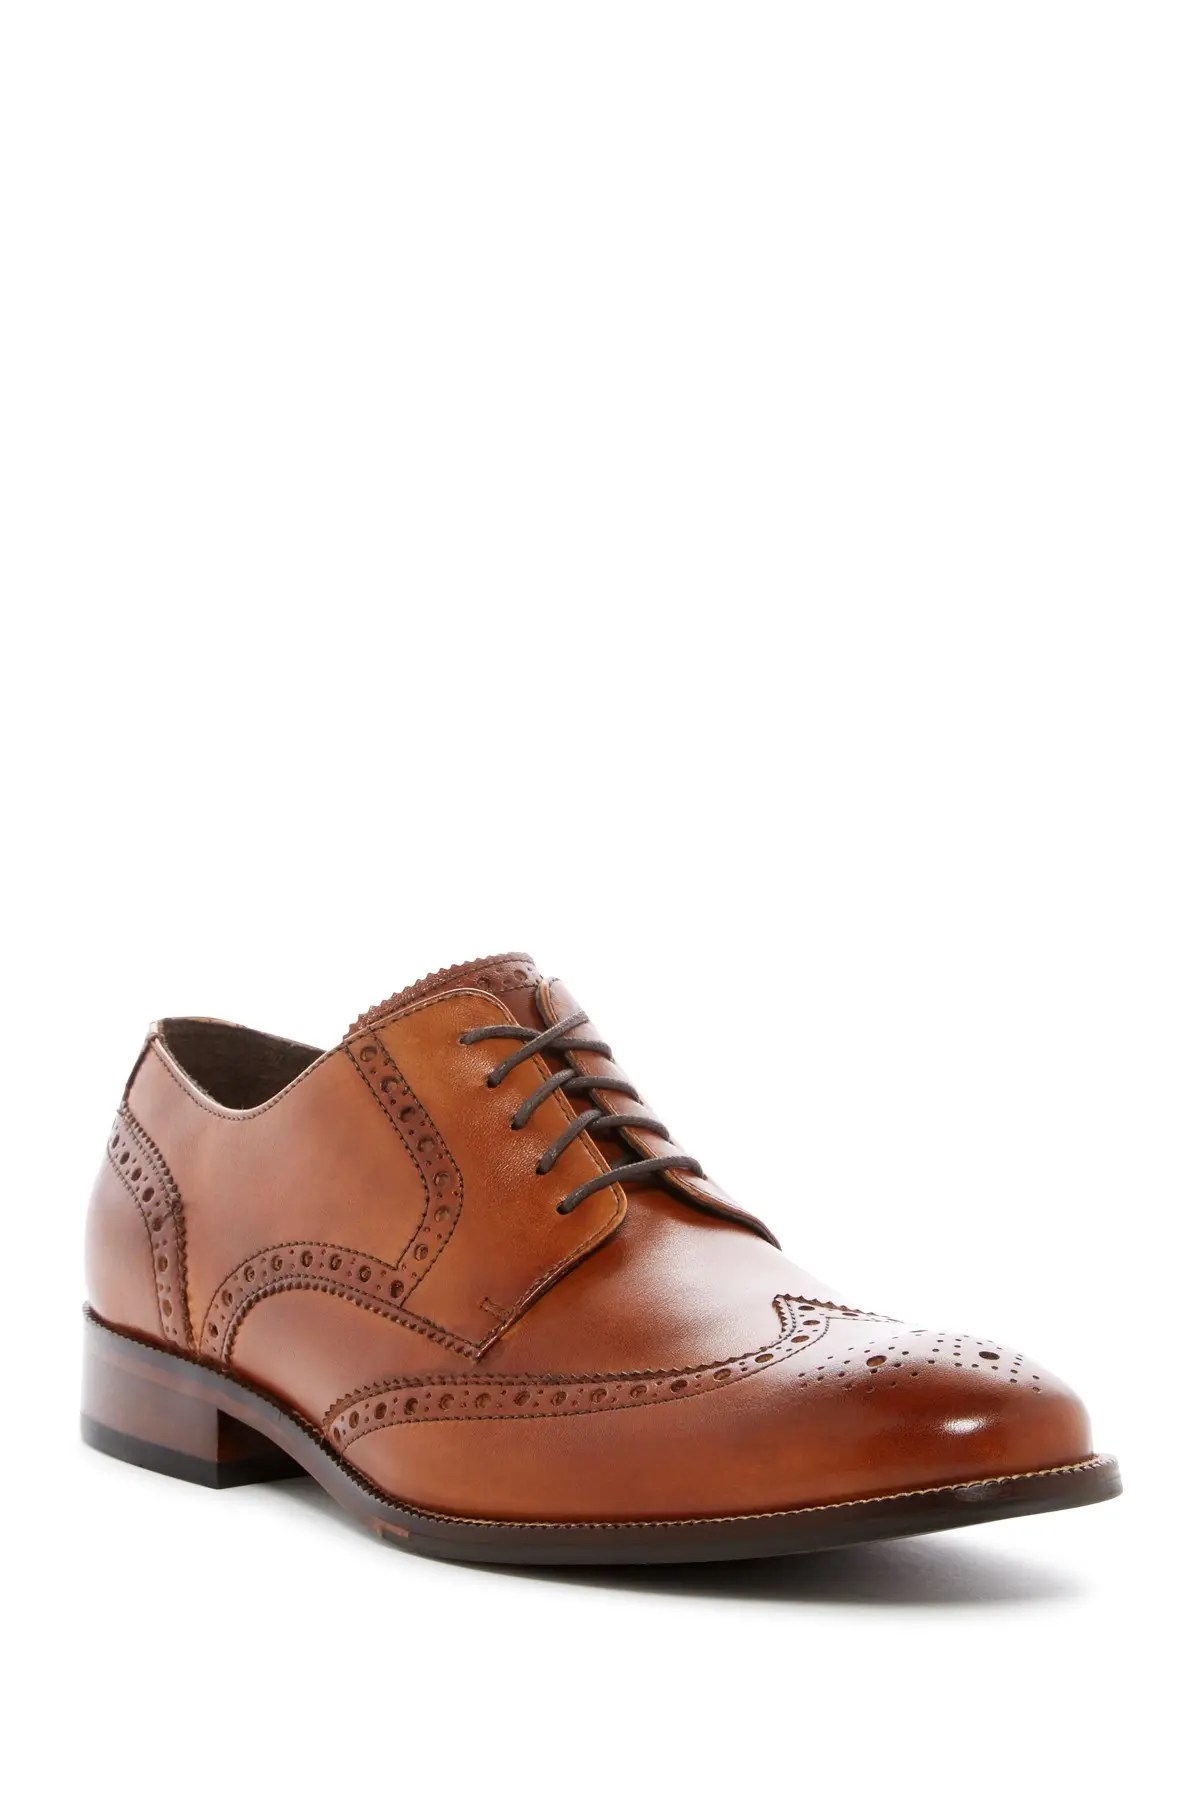 nordstrom rack mens shoes clearance